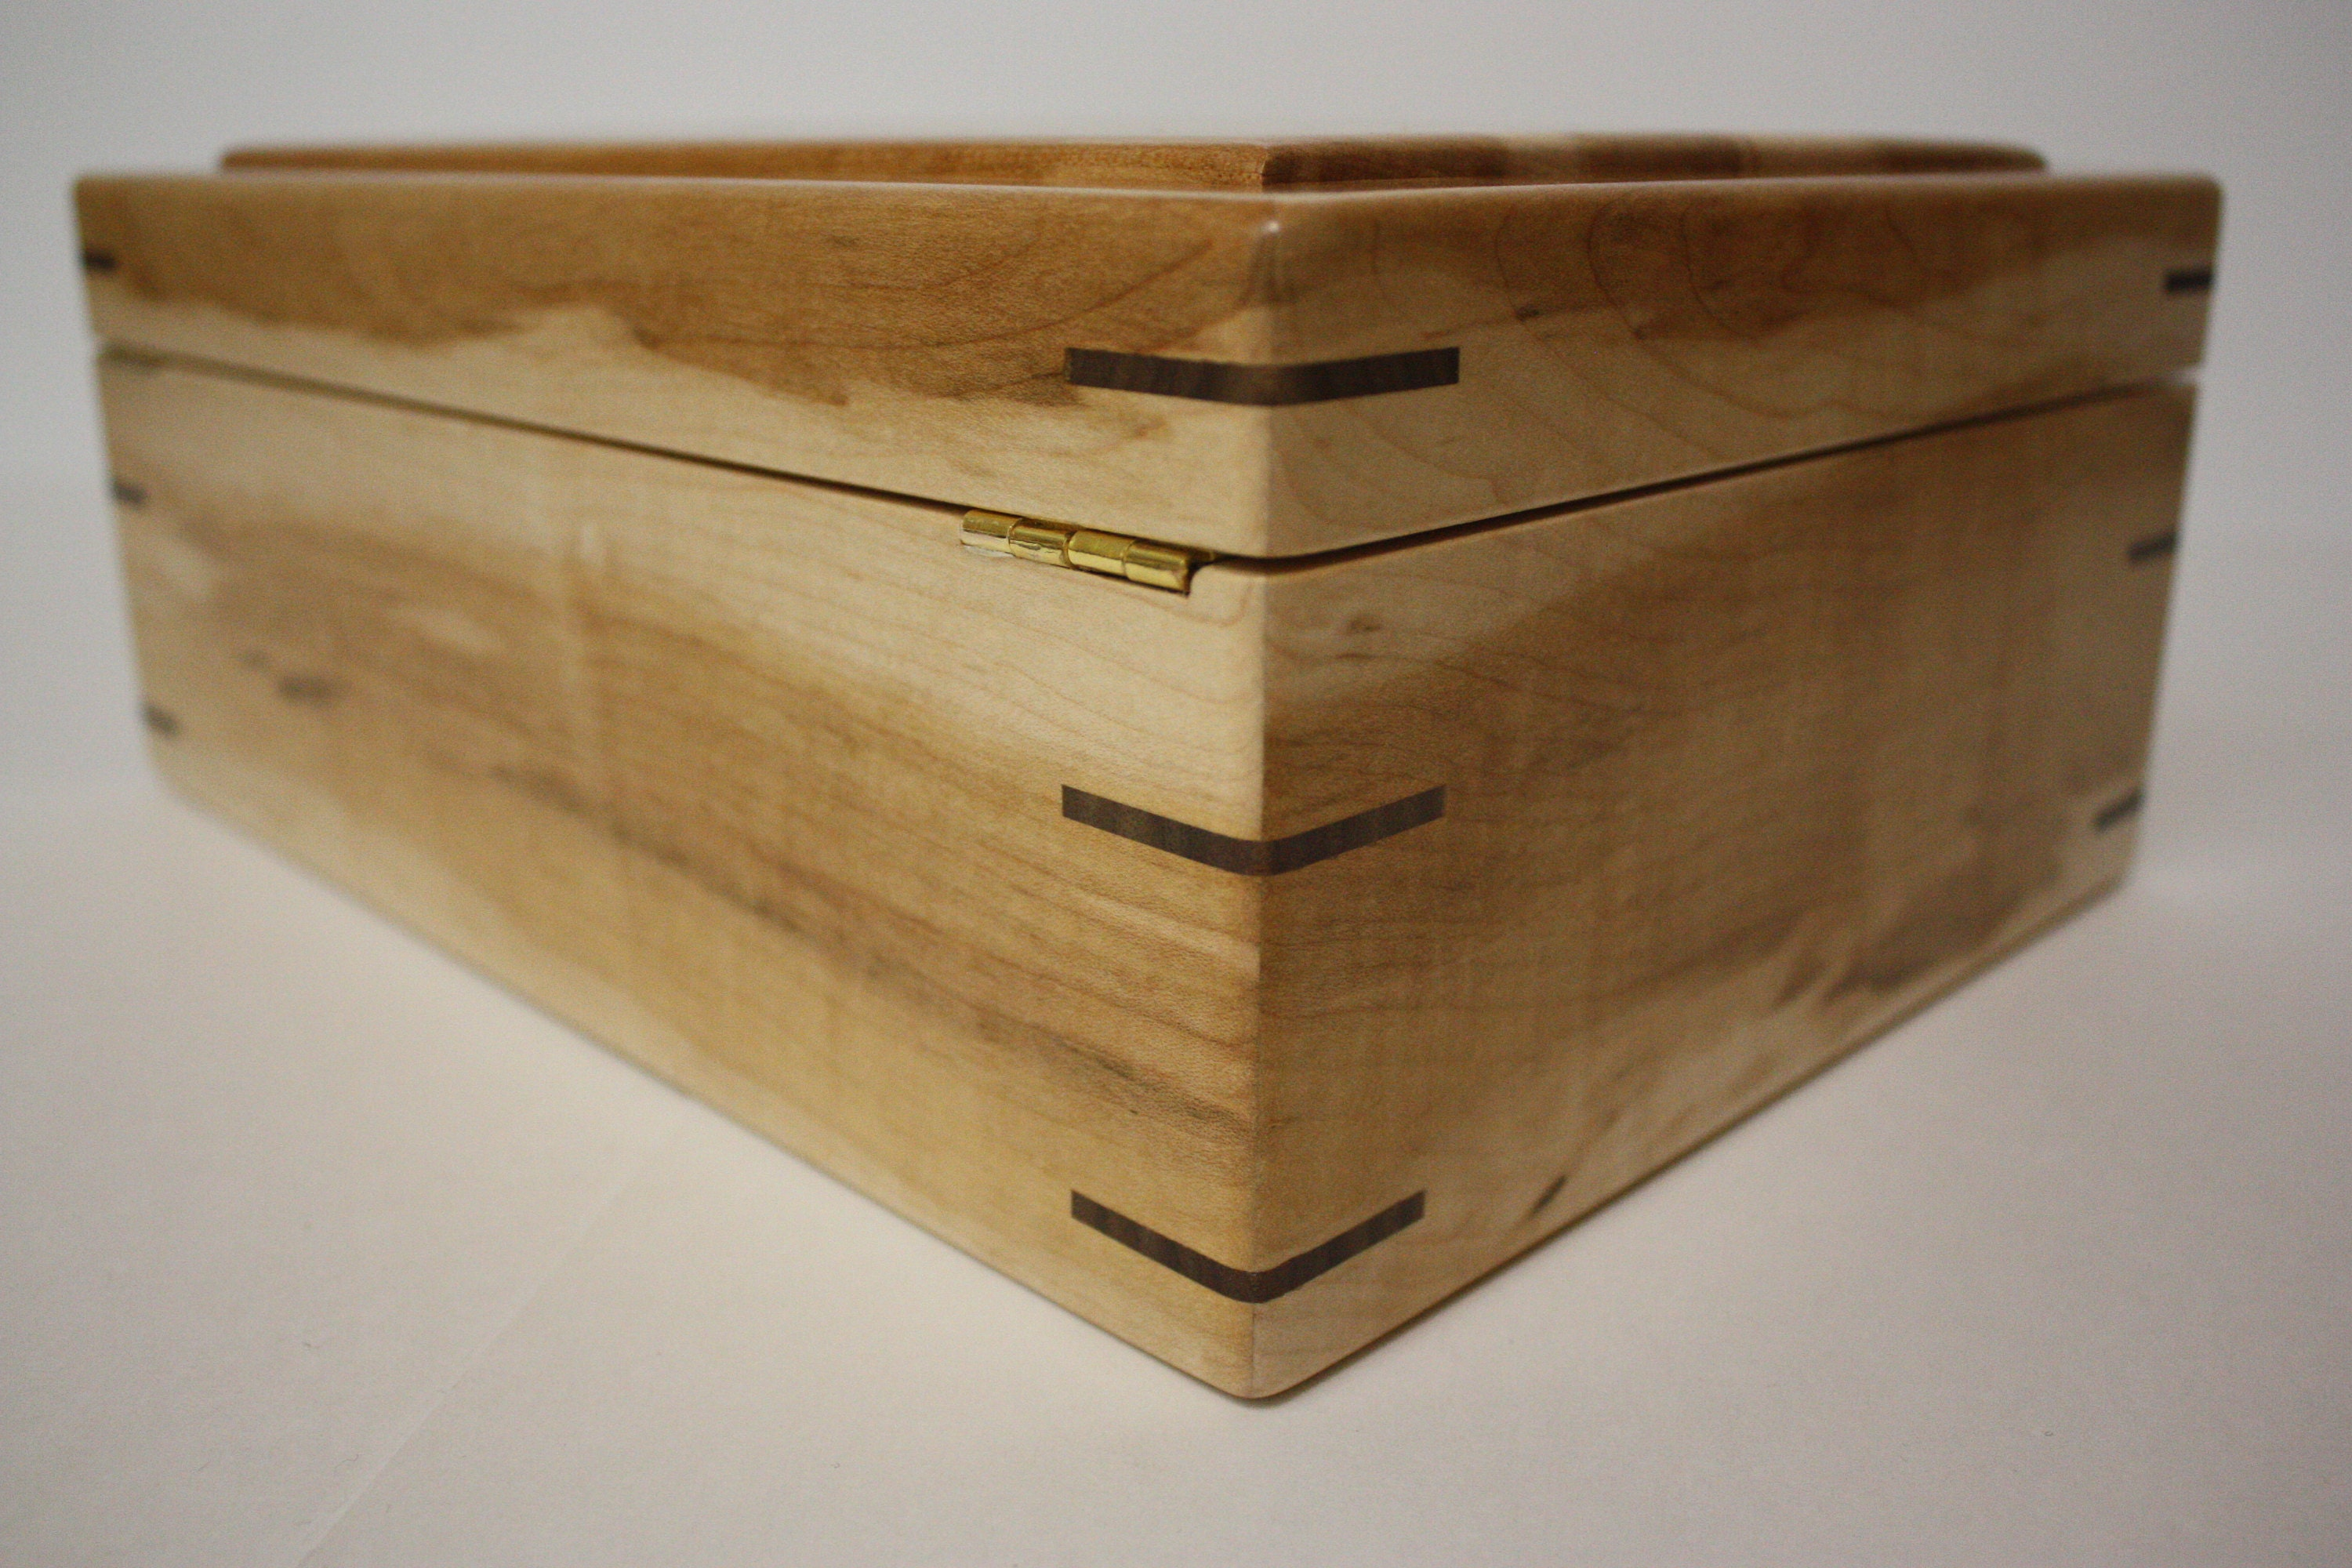 Wood Box with Mitered Corners